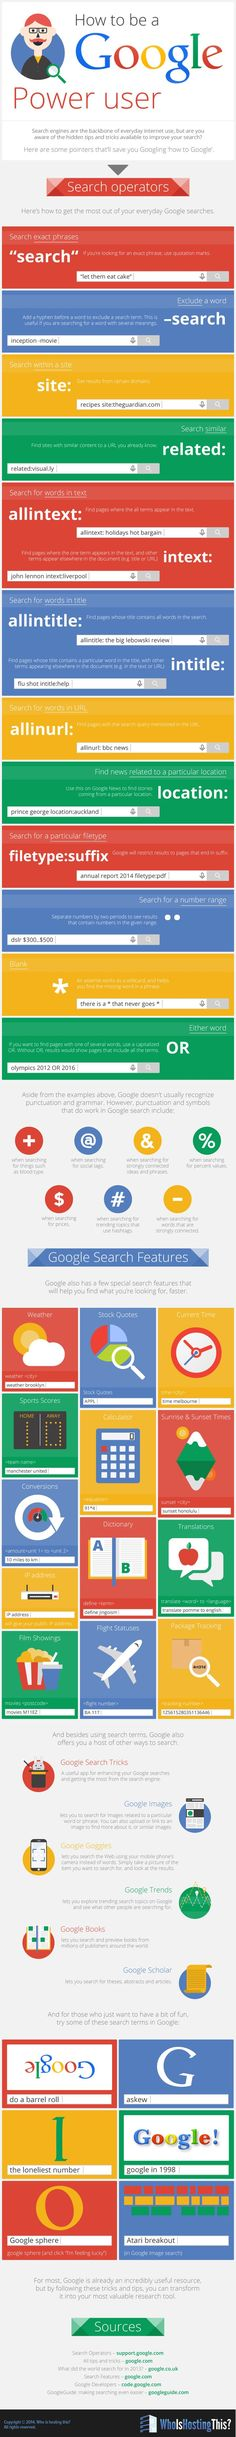 How-to-be-a-google-power-user-1 #infographic #google #search #seo